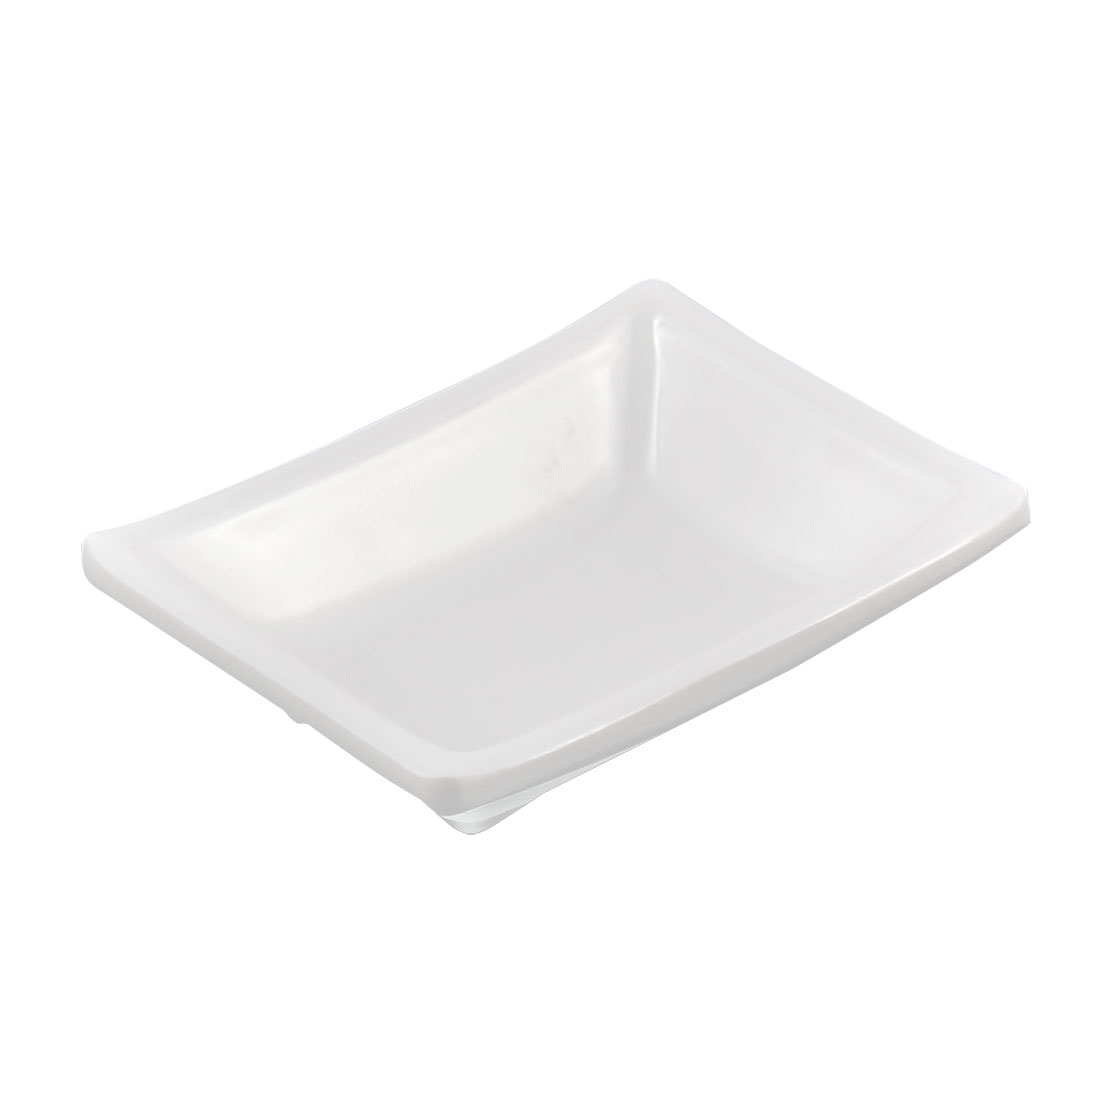 Plastic Sushi Soy Sauce Wasabi Condiment Serving Dipping Dish Plate White